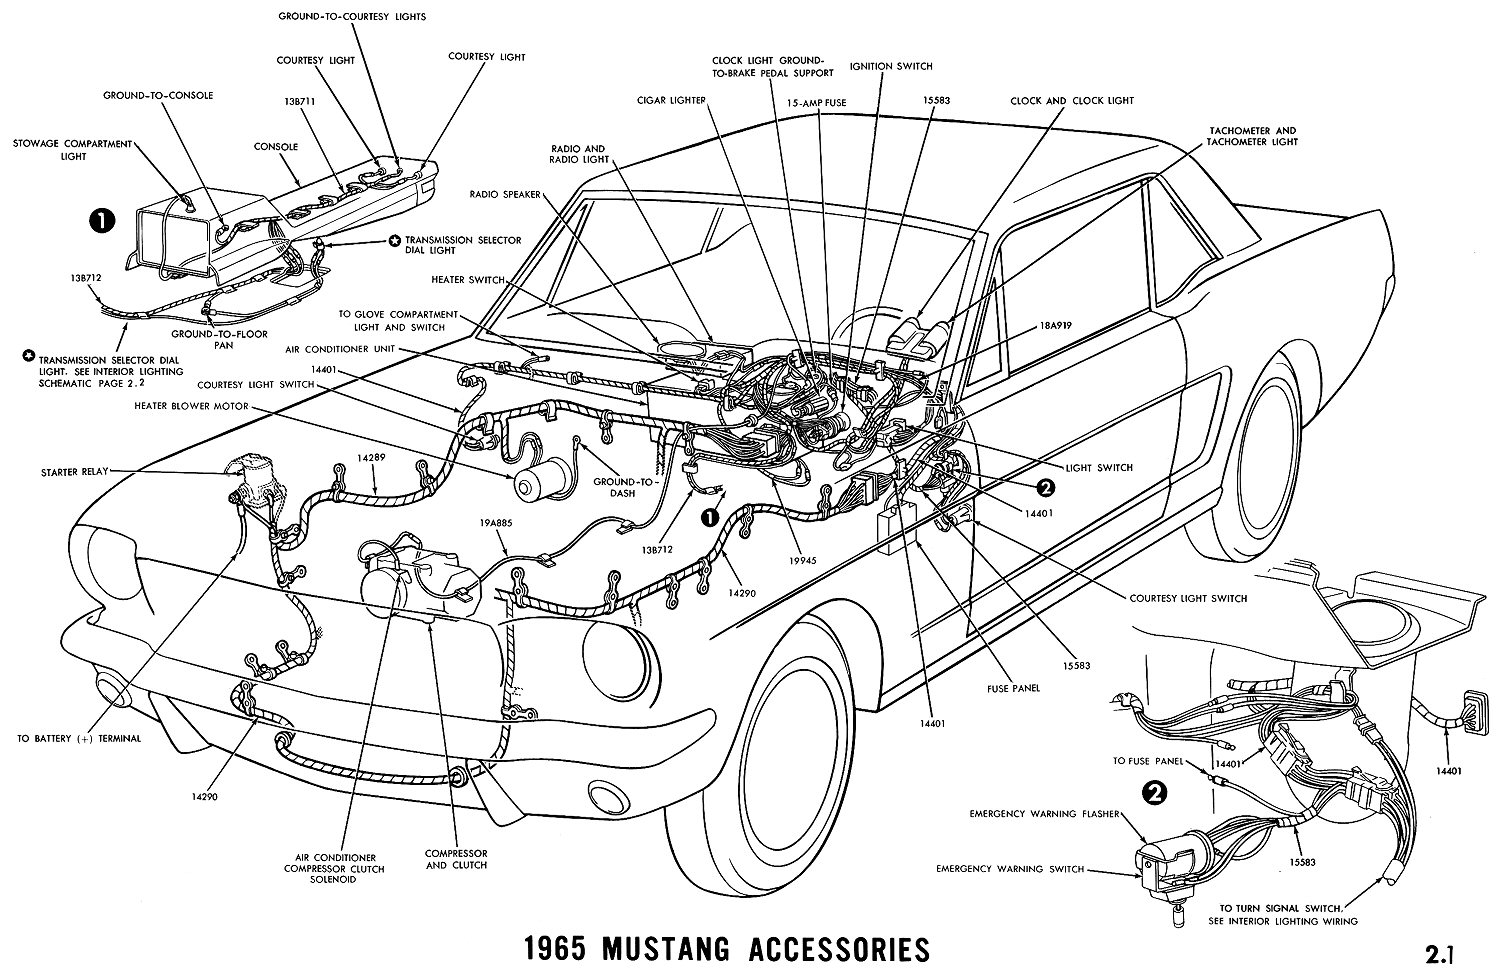 65 mustang accesories 1965 mustang accesories diagram 65 mustang dash wiring diagram at bayanpartner.co